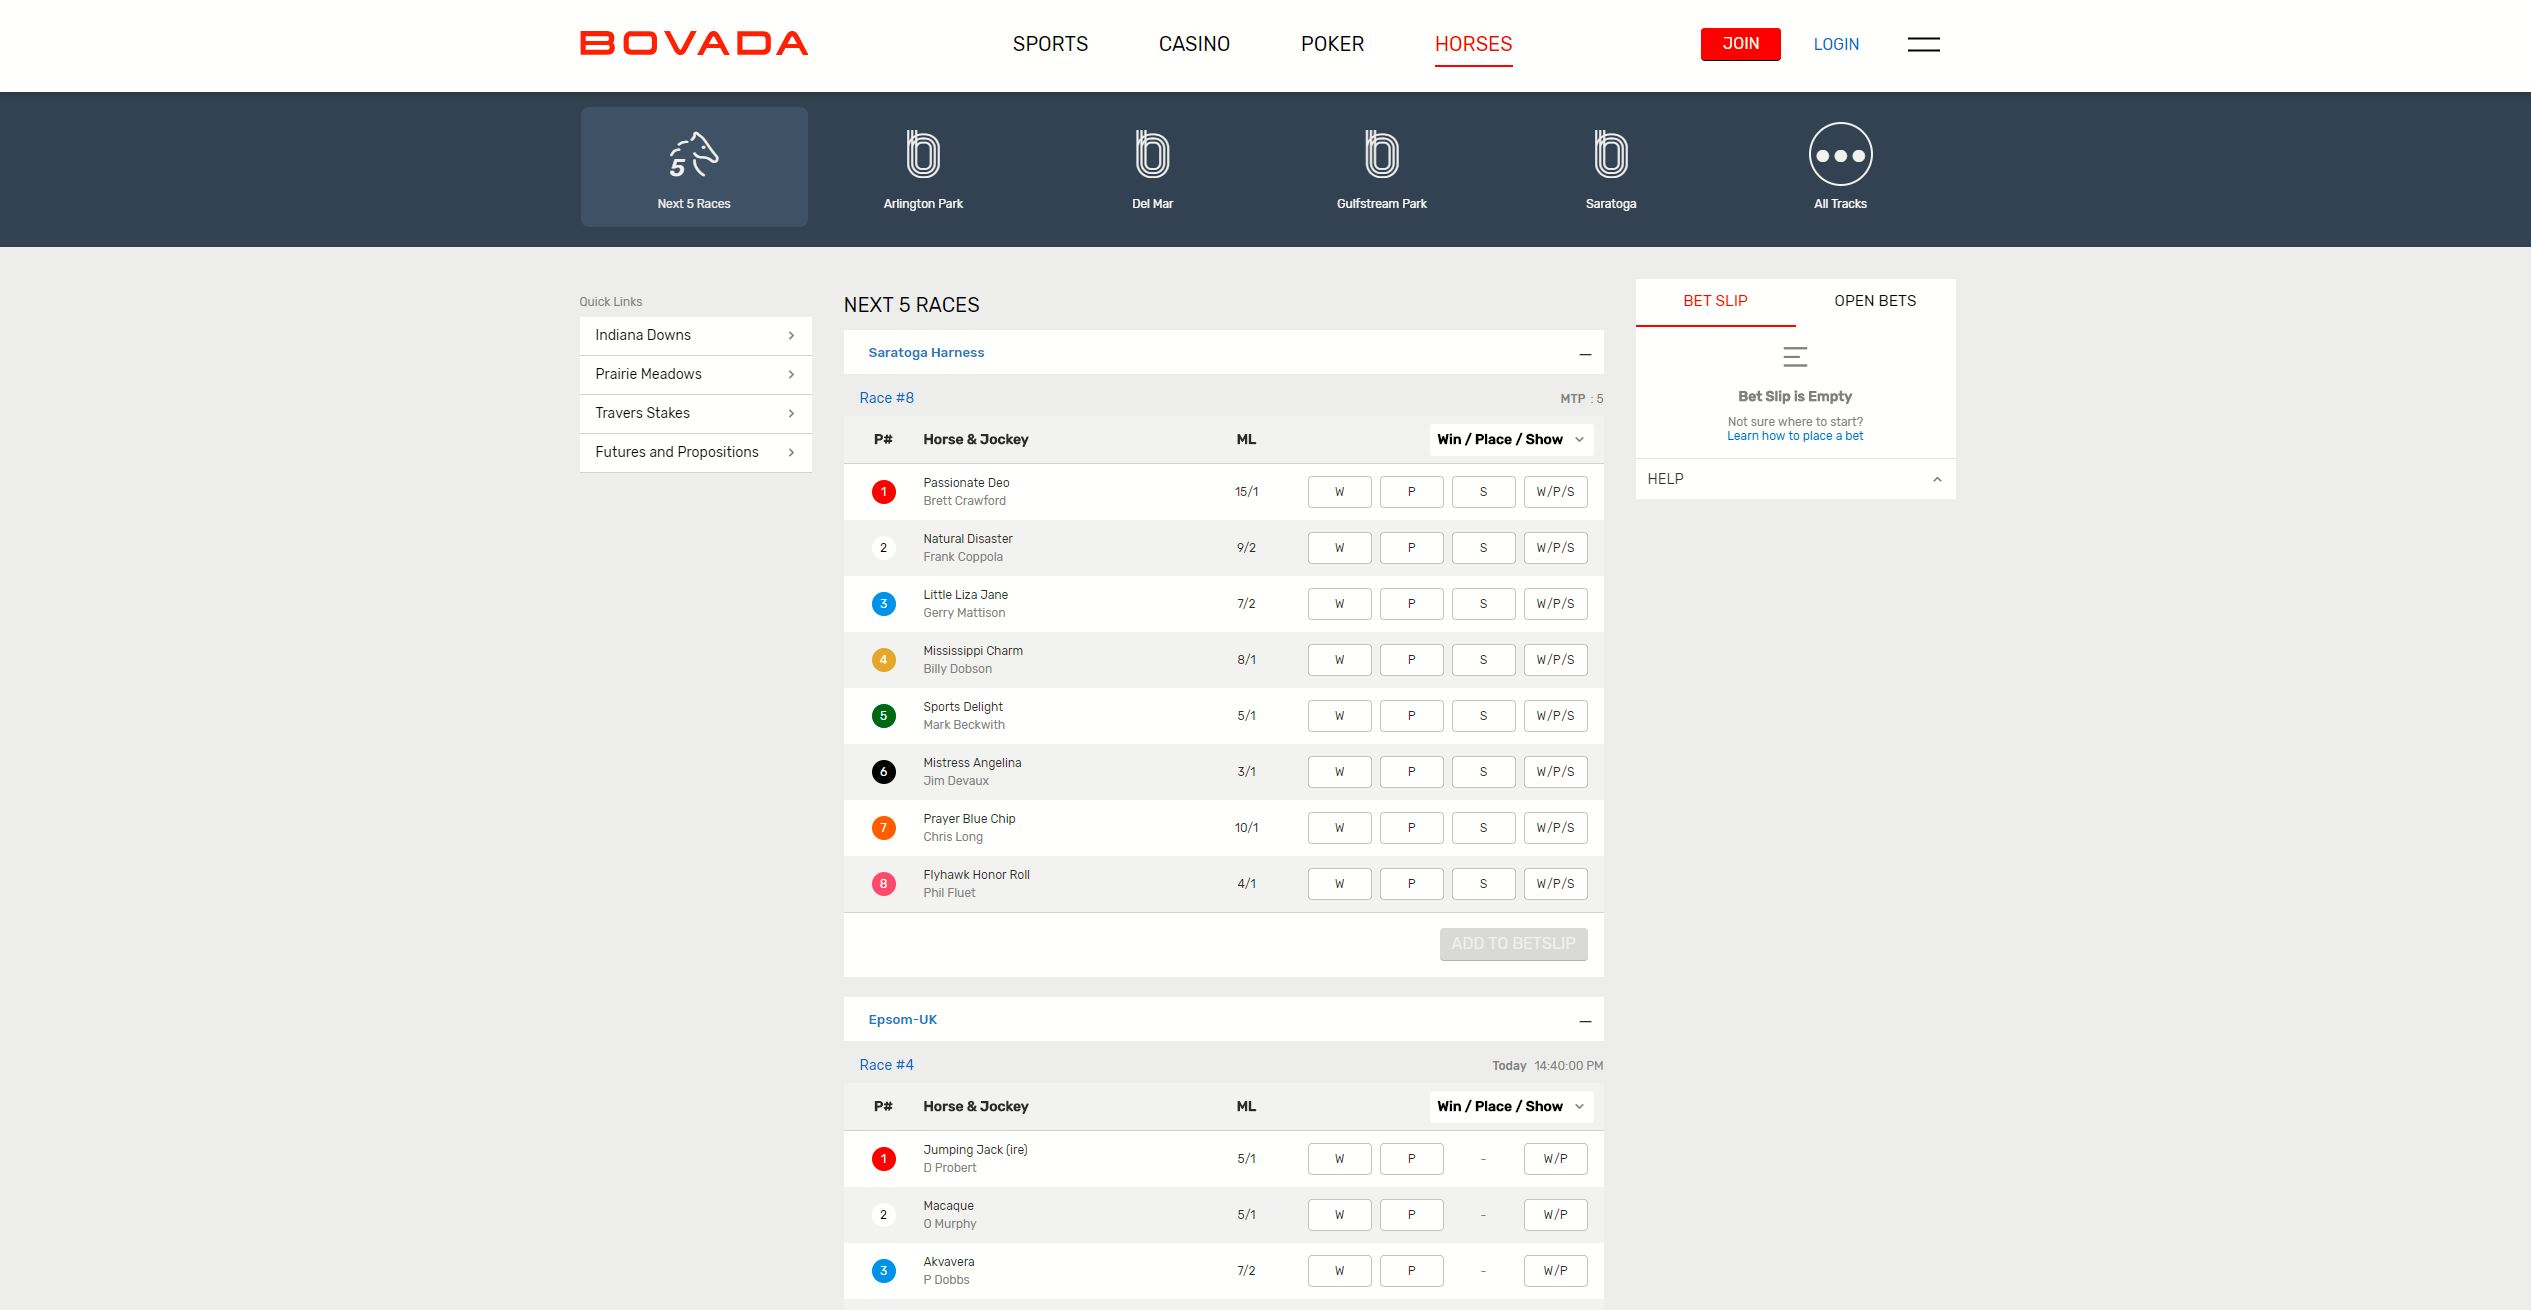 Bovada Review - Full Review of Bovada Sportsbook including